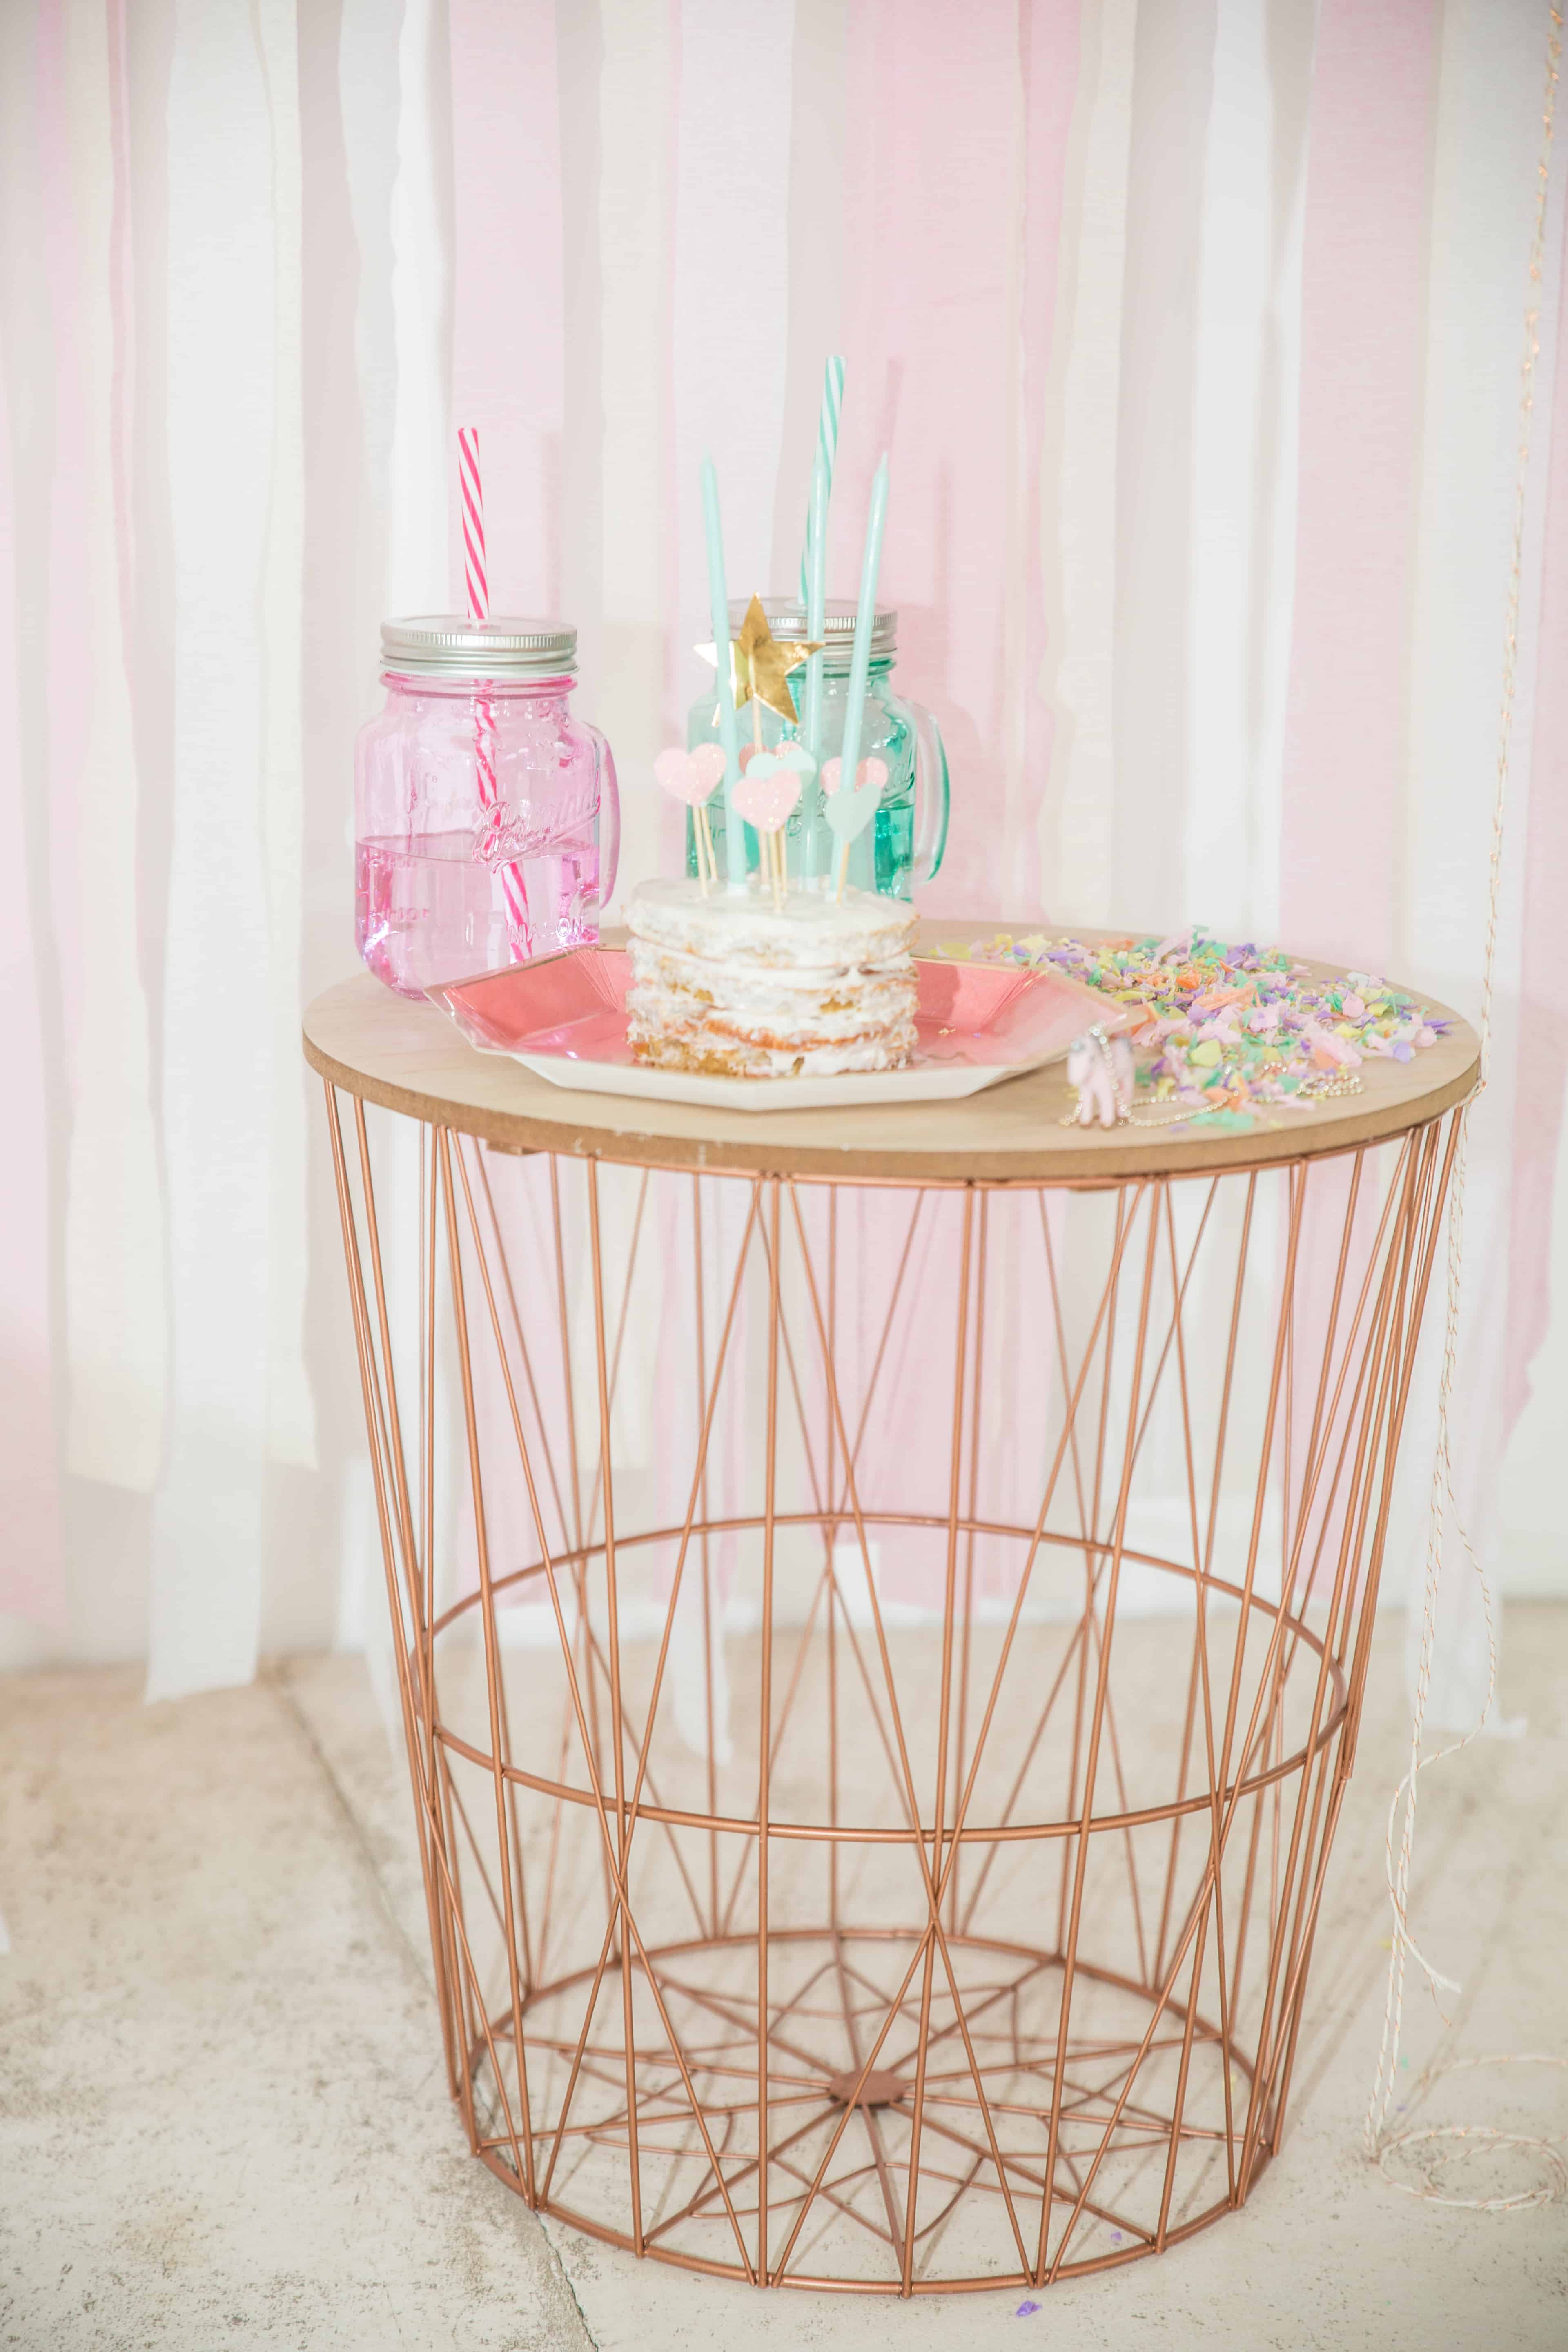 Decoration Anniversaire Girly Anniversaire Girly Pour Une Petite Princesse Save The Deco